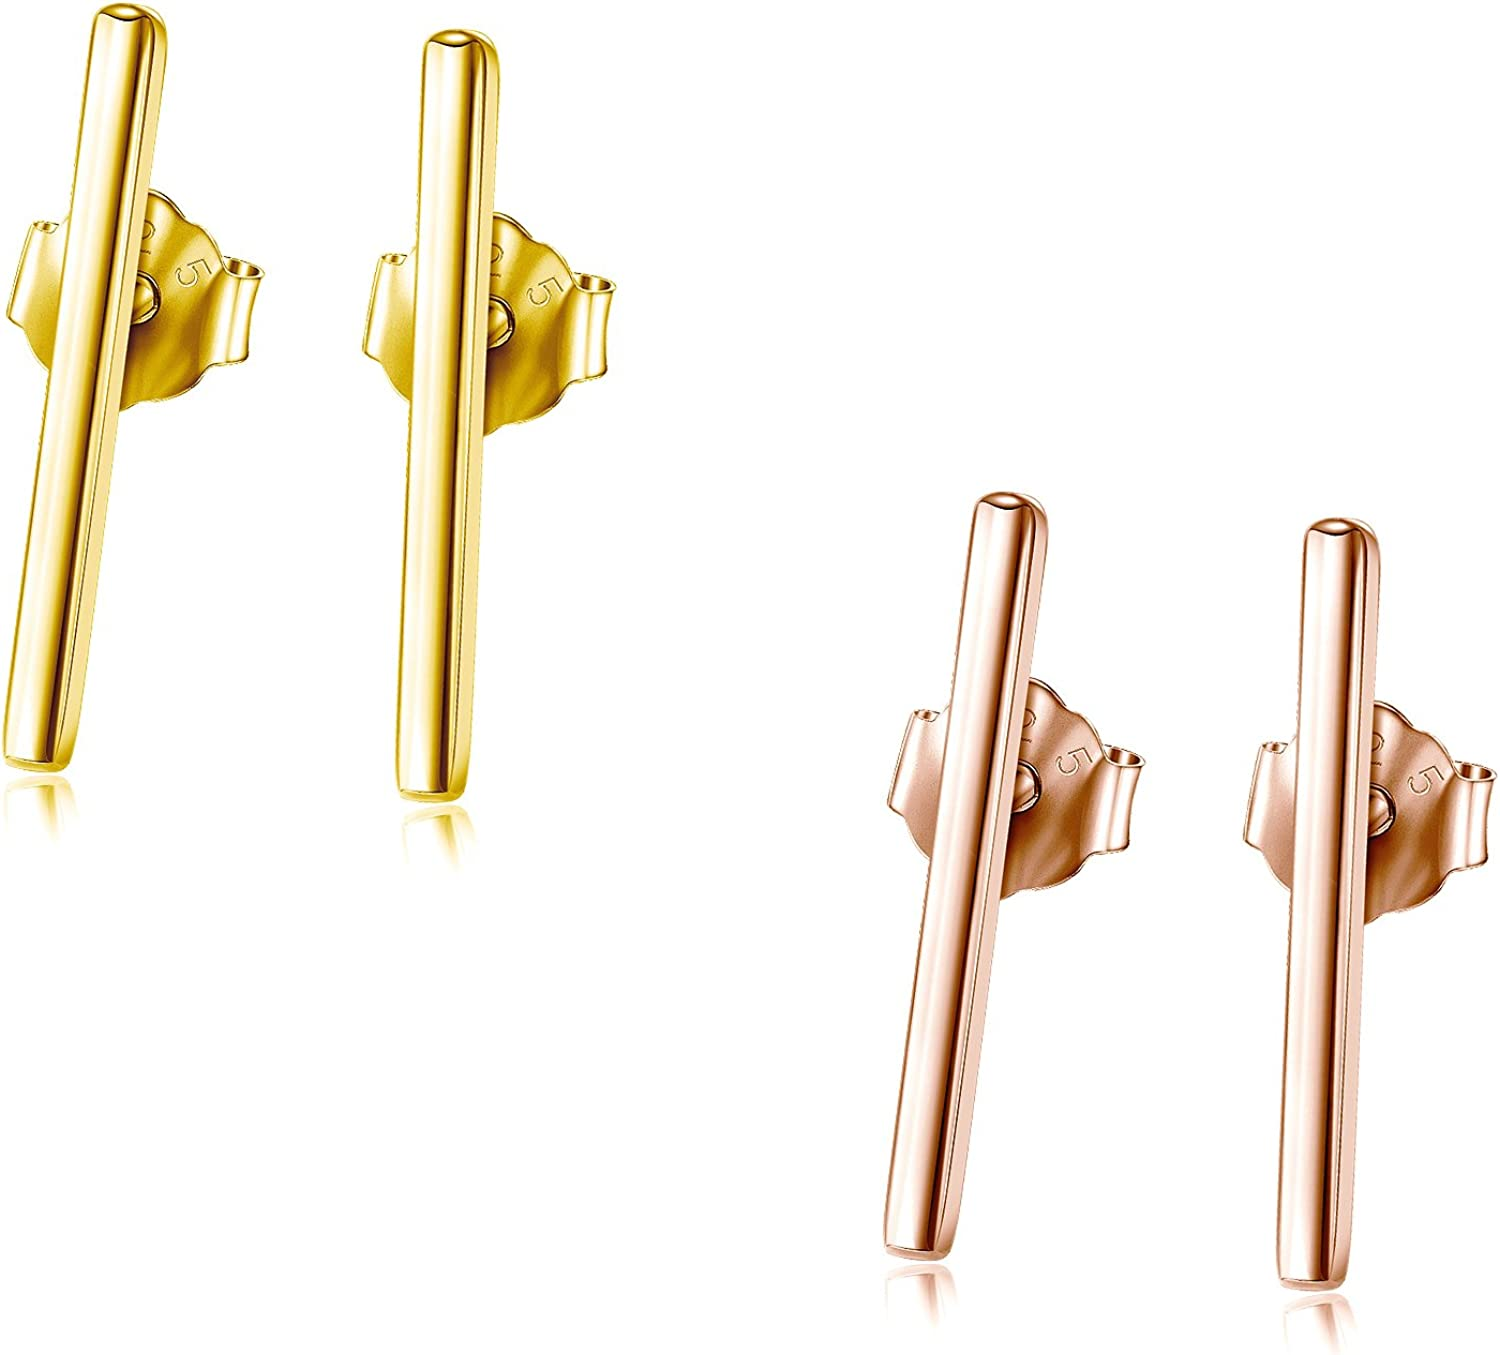 High Quality Sweet and Simple Solid 925 Sterling Silver Shiny Rectangular Bar Studs Earrings with Silver Backings 5mm 1 pair